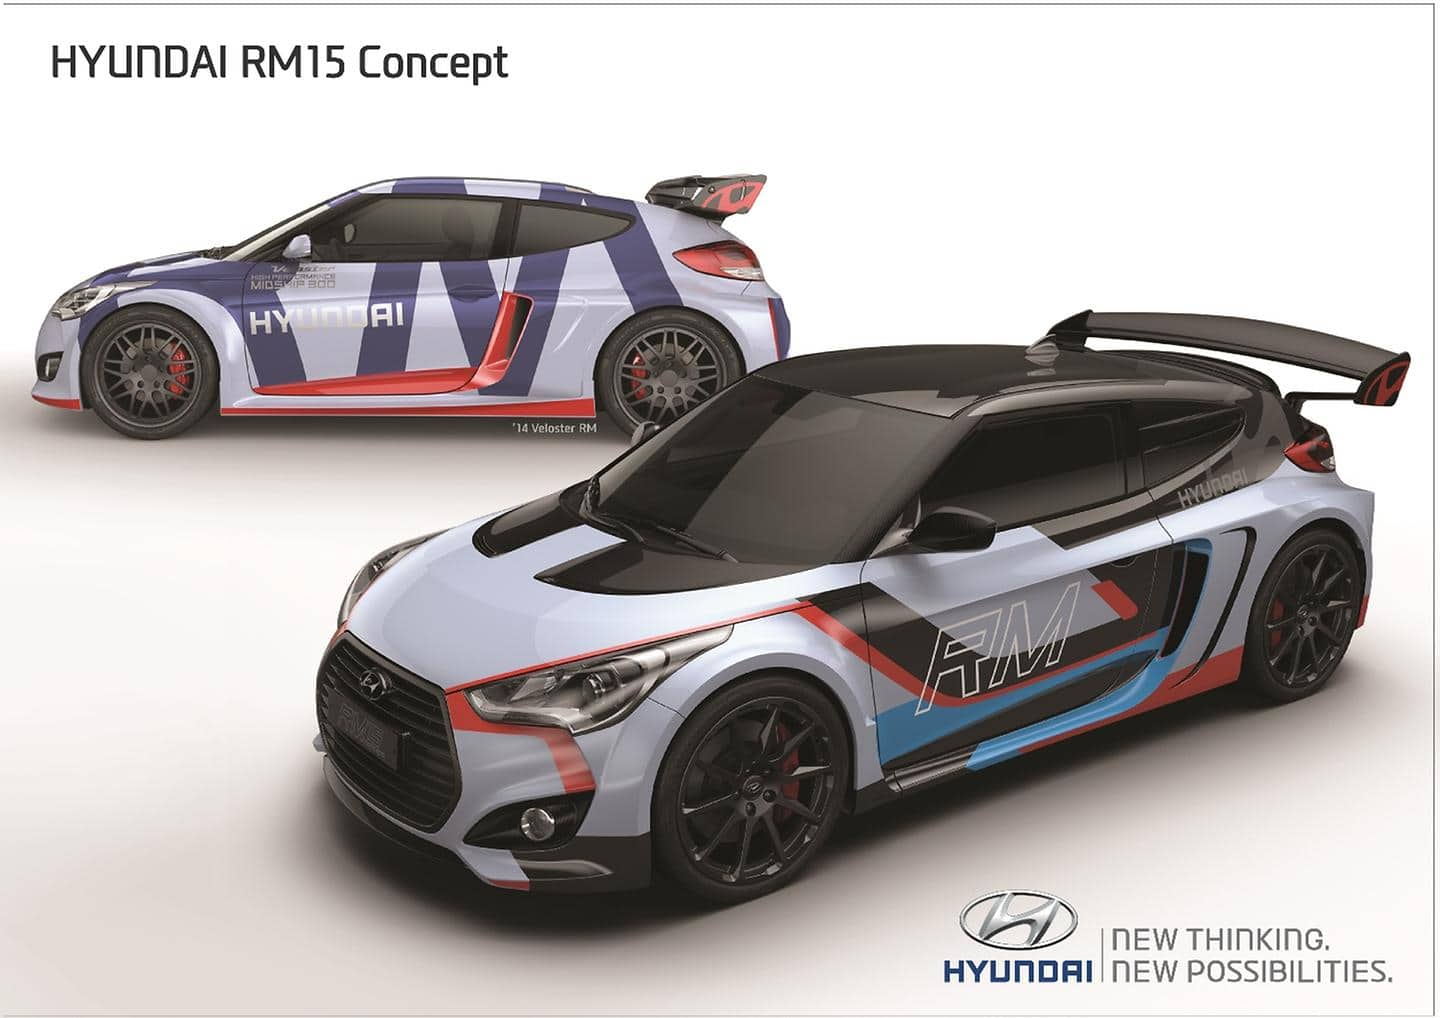 Hyundai Motor's Mid-engined Coupe Concept 'RM15' Revealed at 2015 Seoul Motor Show (3)